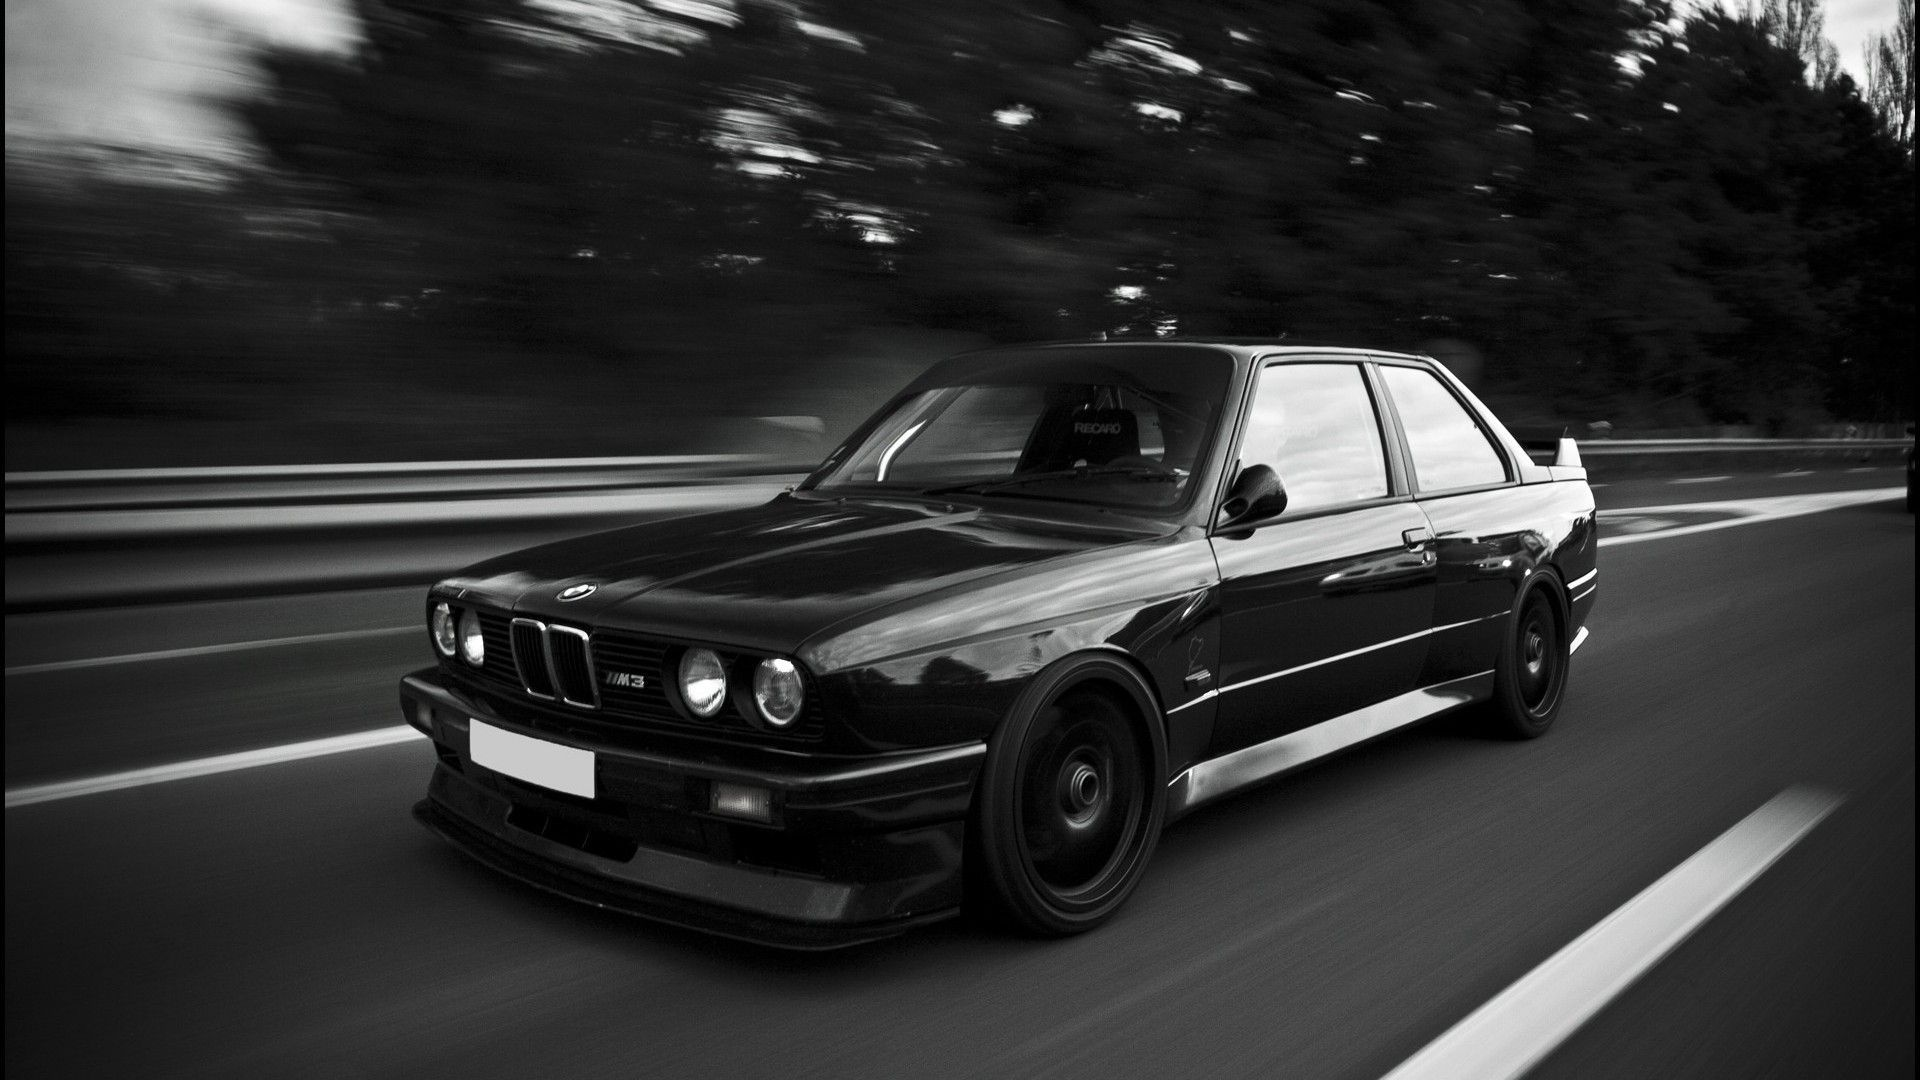 Bmw M3 E30 >> BMW E30 Wallpaper 04 - [1920x1080]